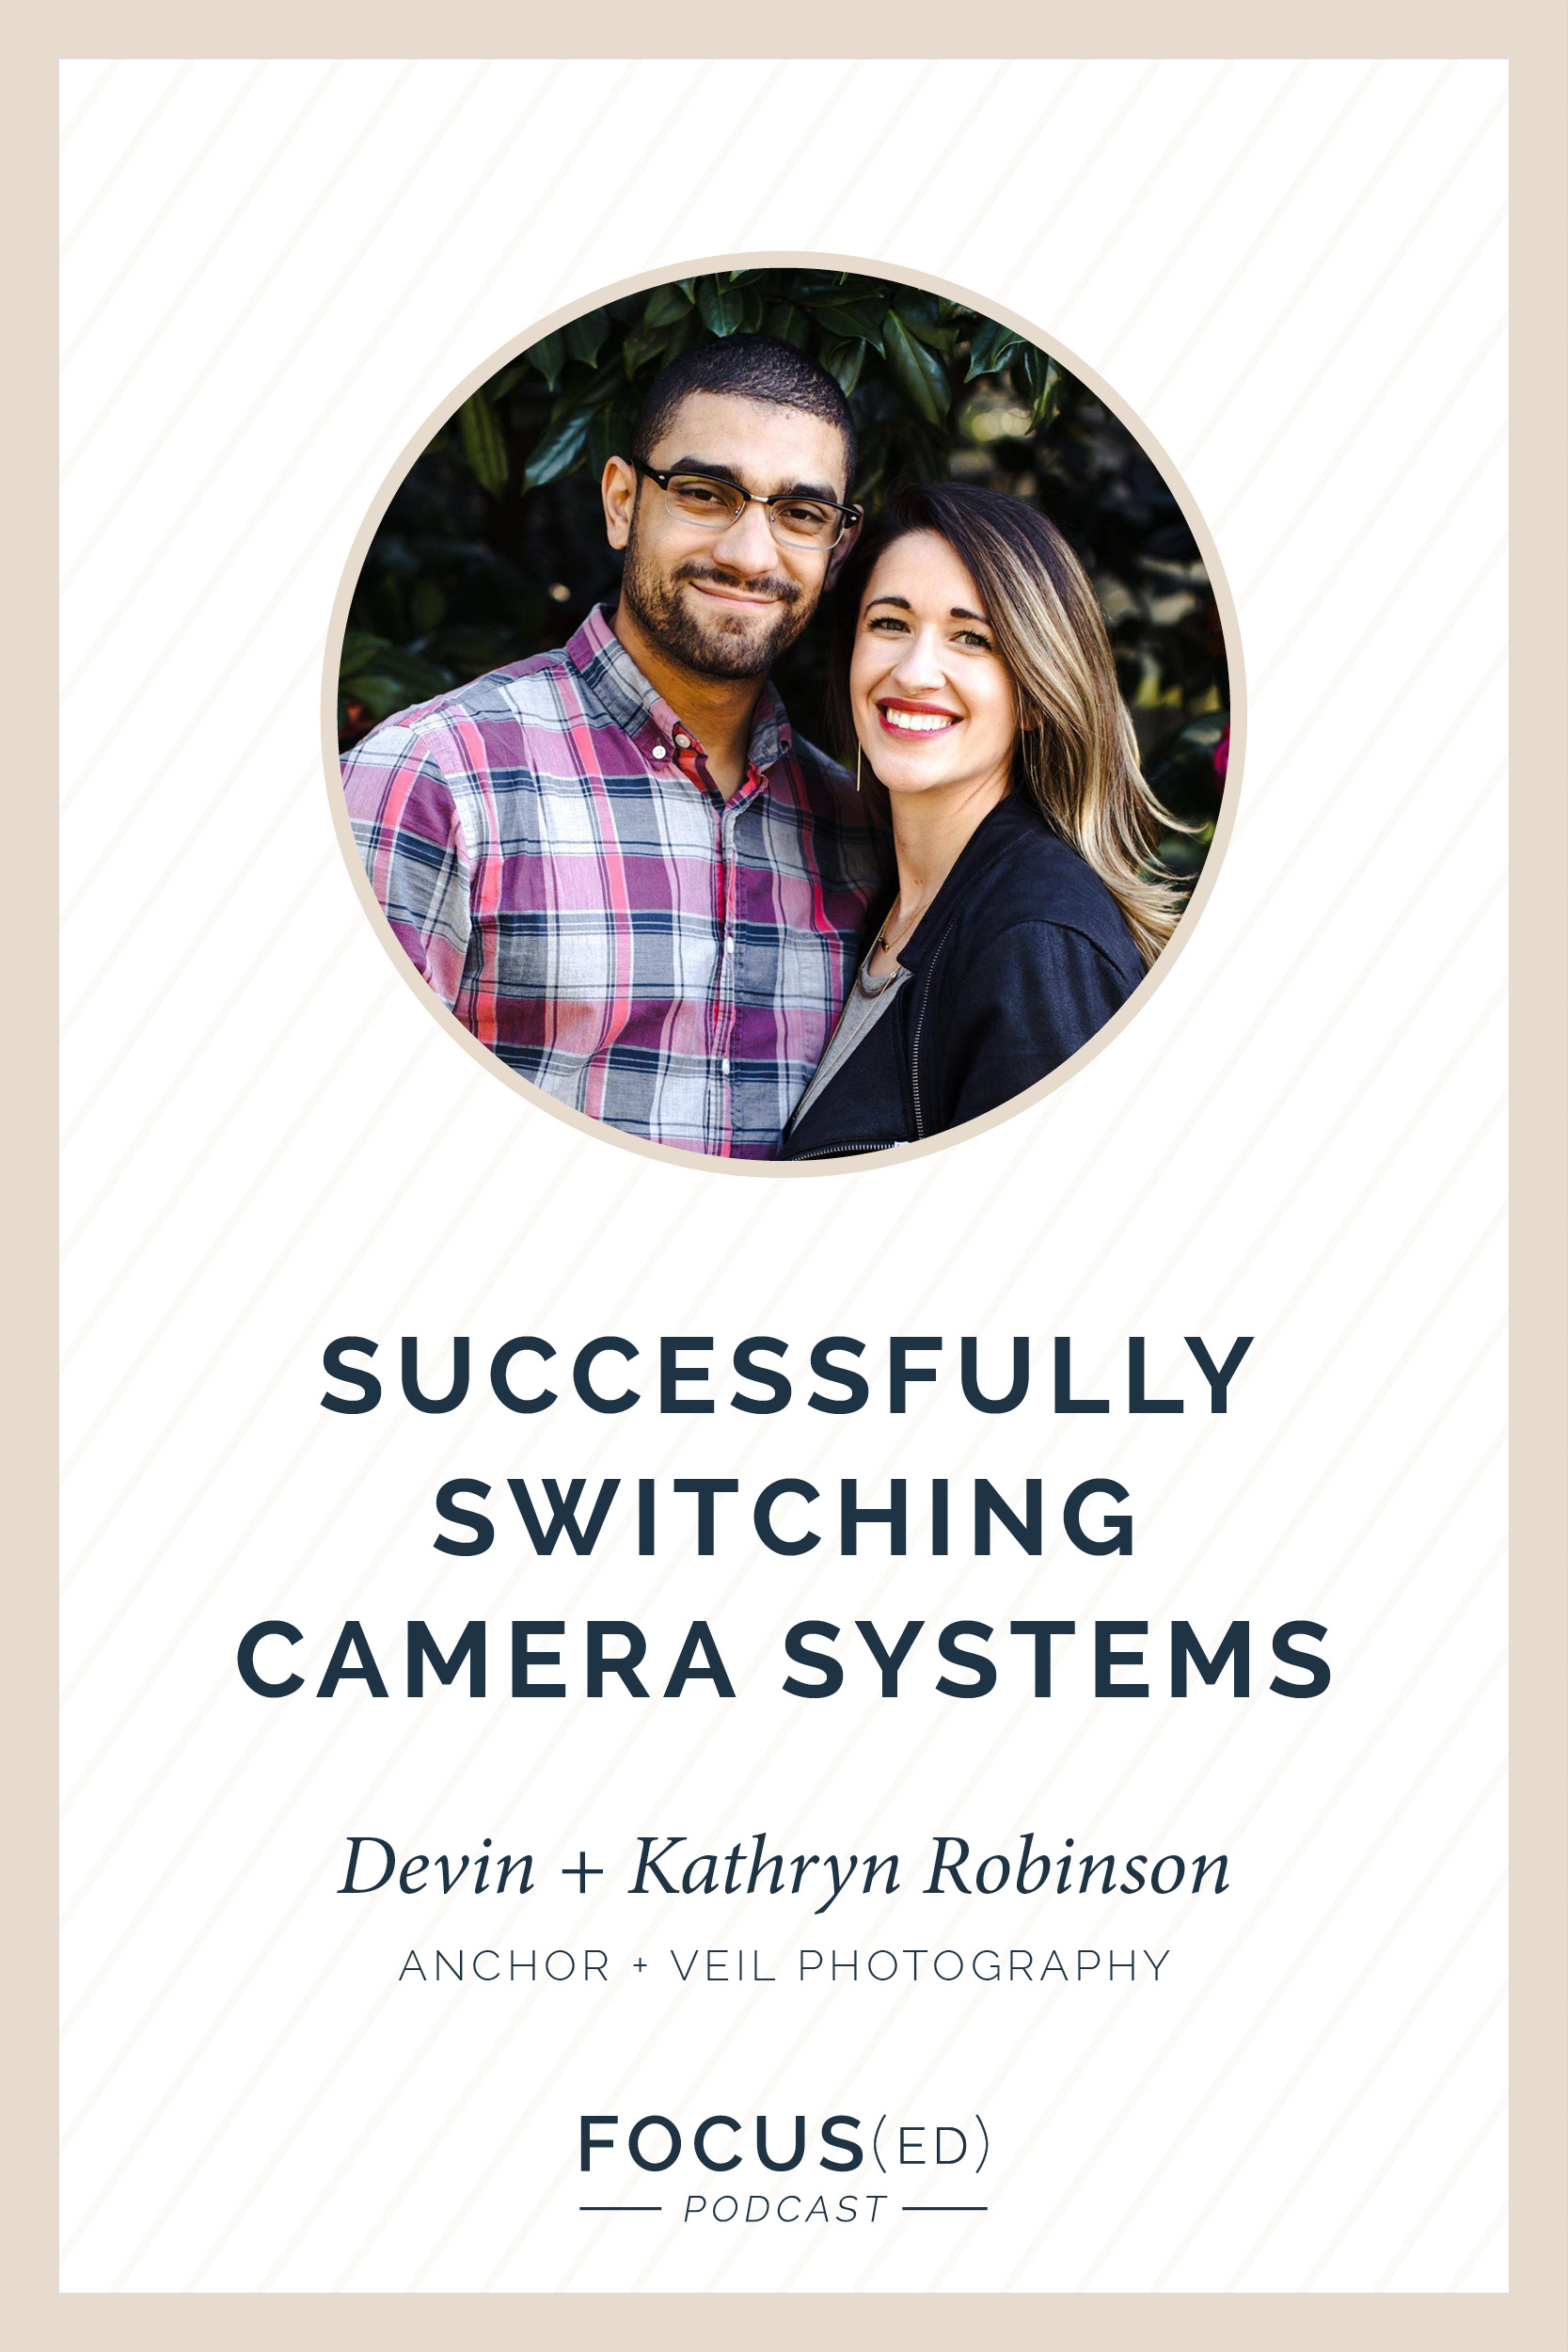 Successfully Switching Camera Systems, Devin & Kathryn Robinson from Anchor & Veil Photography | Focused Podcast